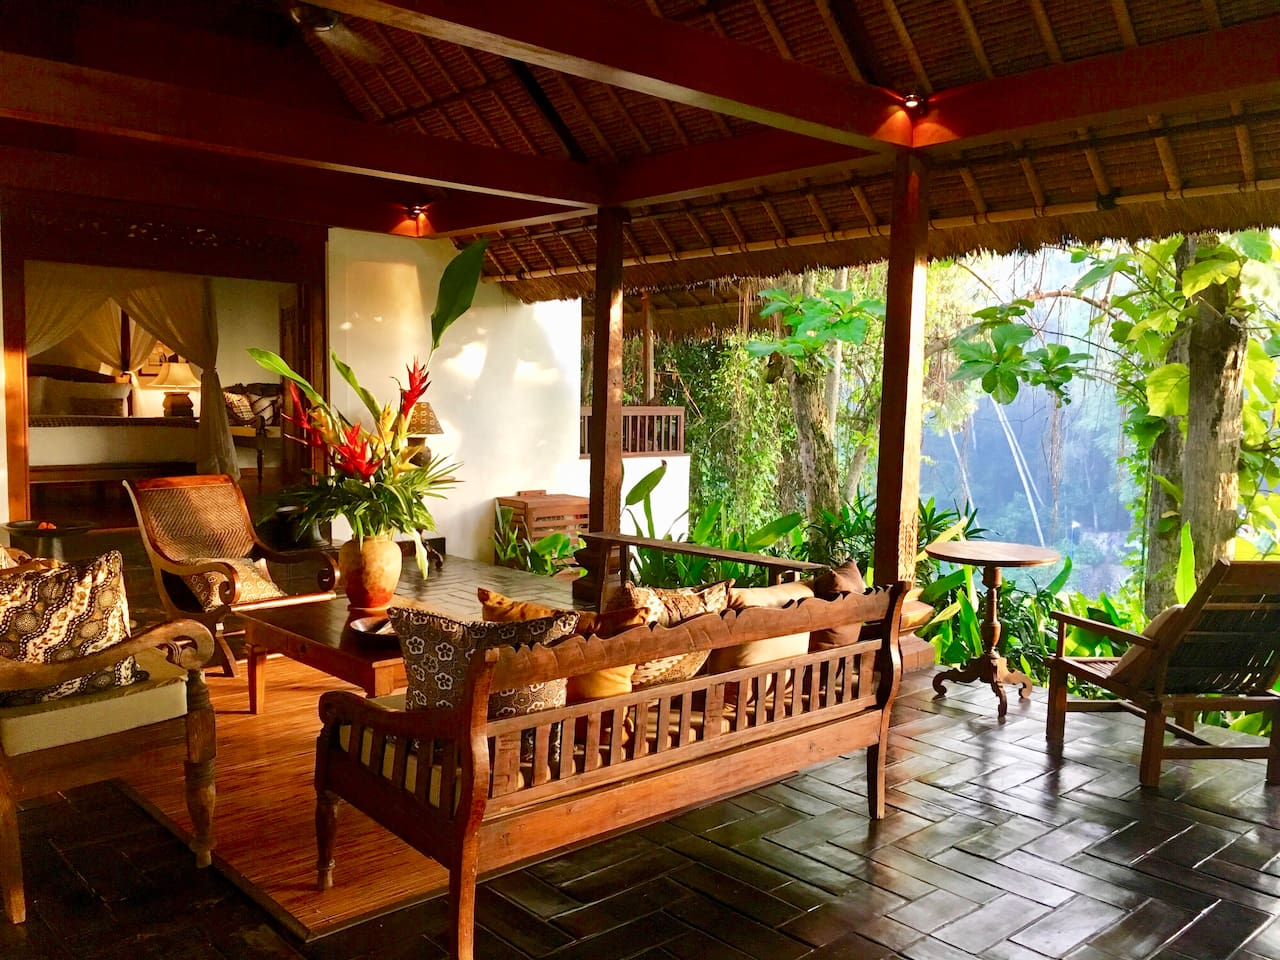 The stunning wantilan (living pavilion) with its tranquil views across  the River Penet, through the lush green foliage,  to the beautiful Balinese temple opposite